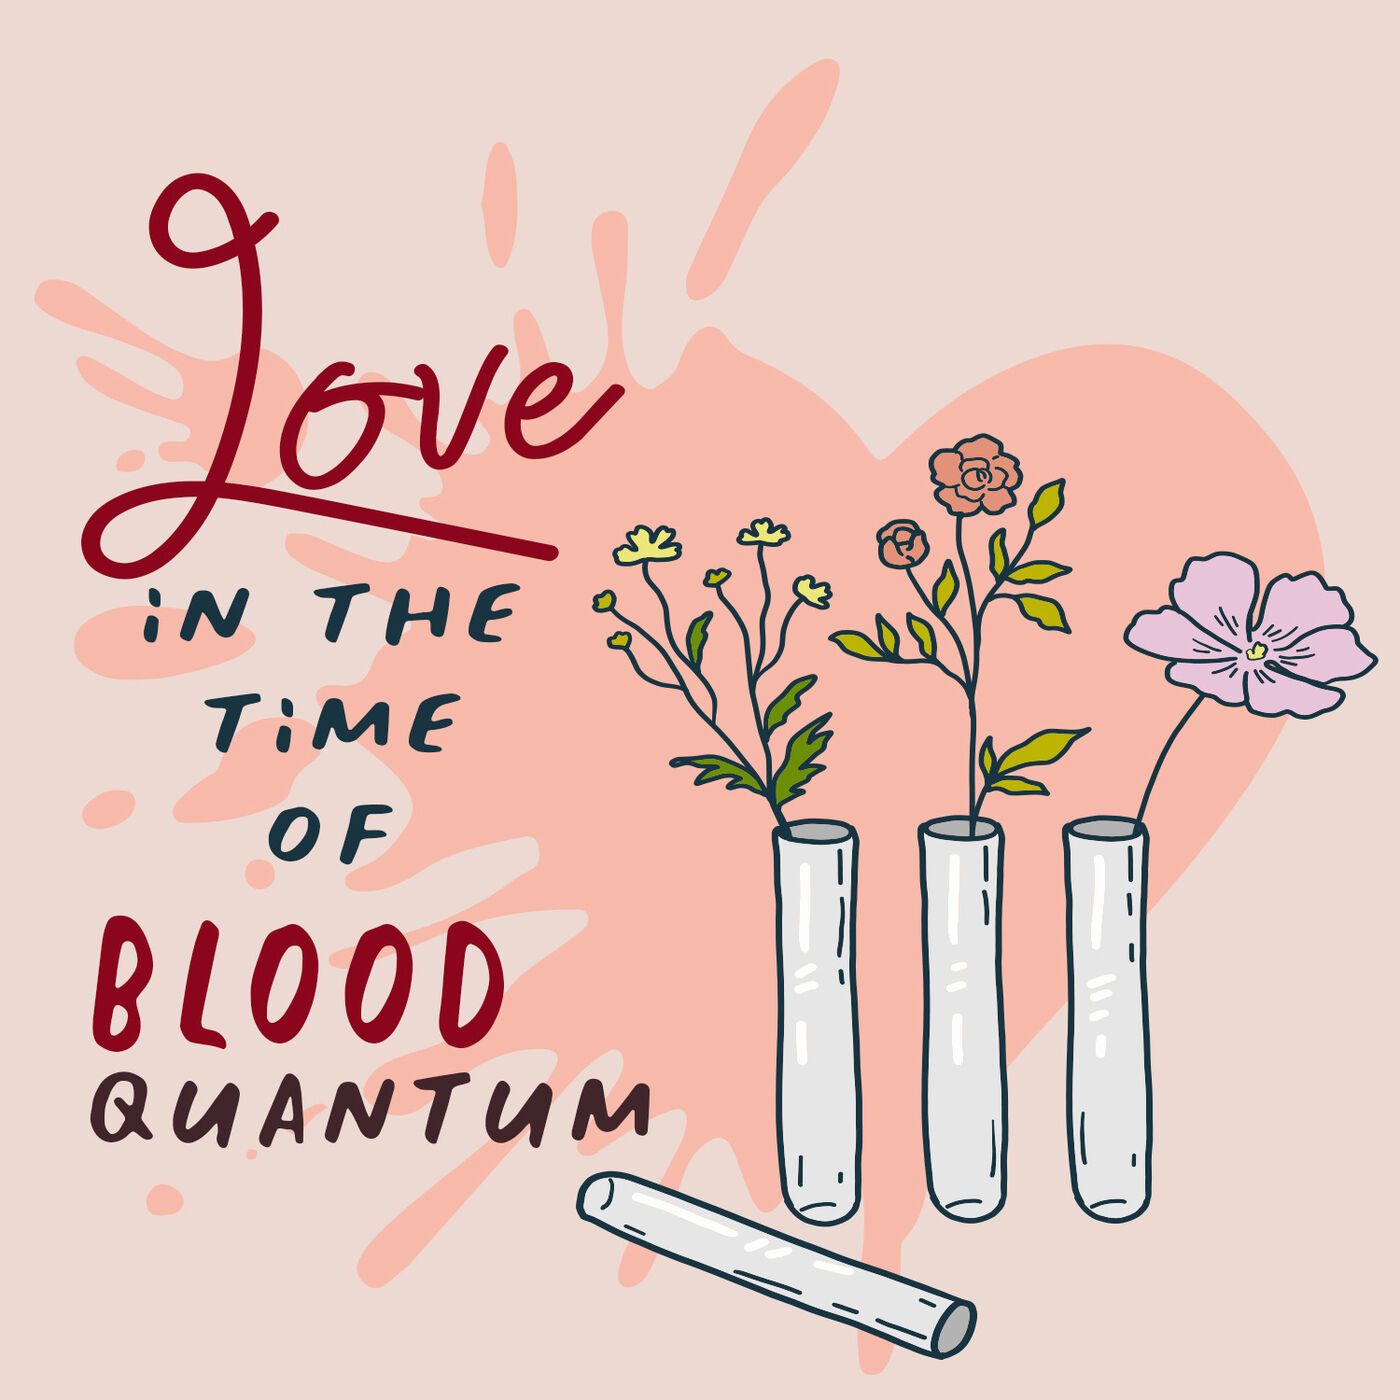 Ep #11: Love in the Time of Blood Quantum